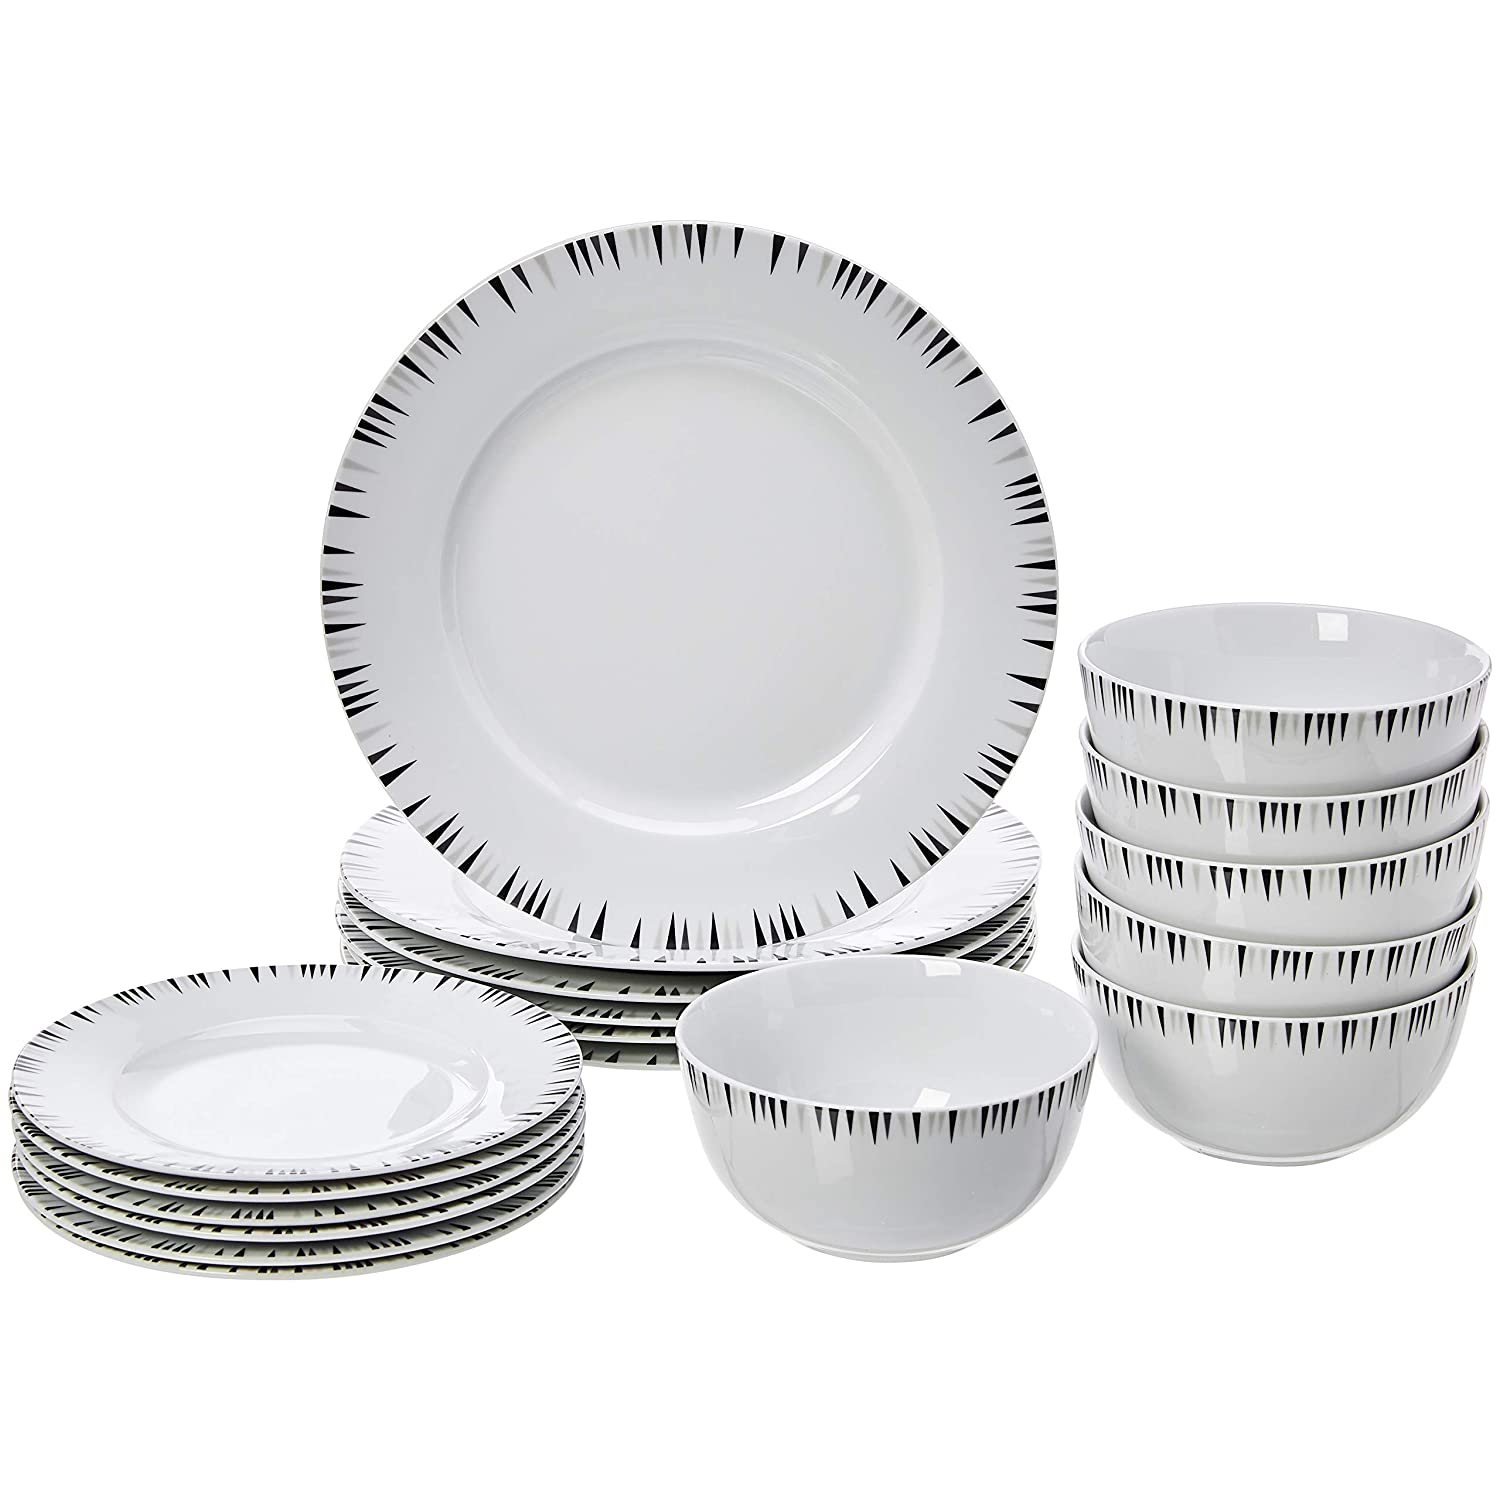 AmazonBasics 18-Piece Kitchen Dinnerware Set, Dishes, Bowls, Service for 6, Bungalow